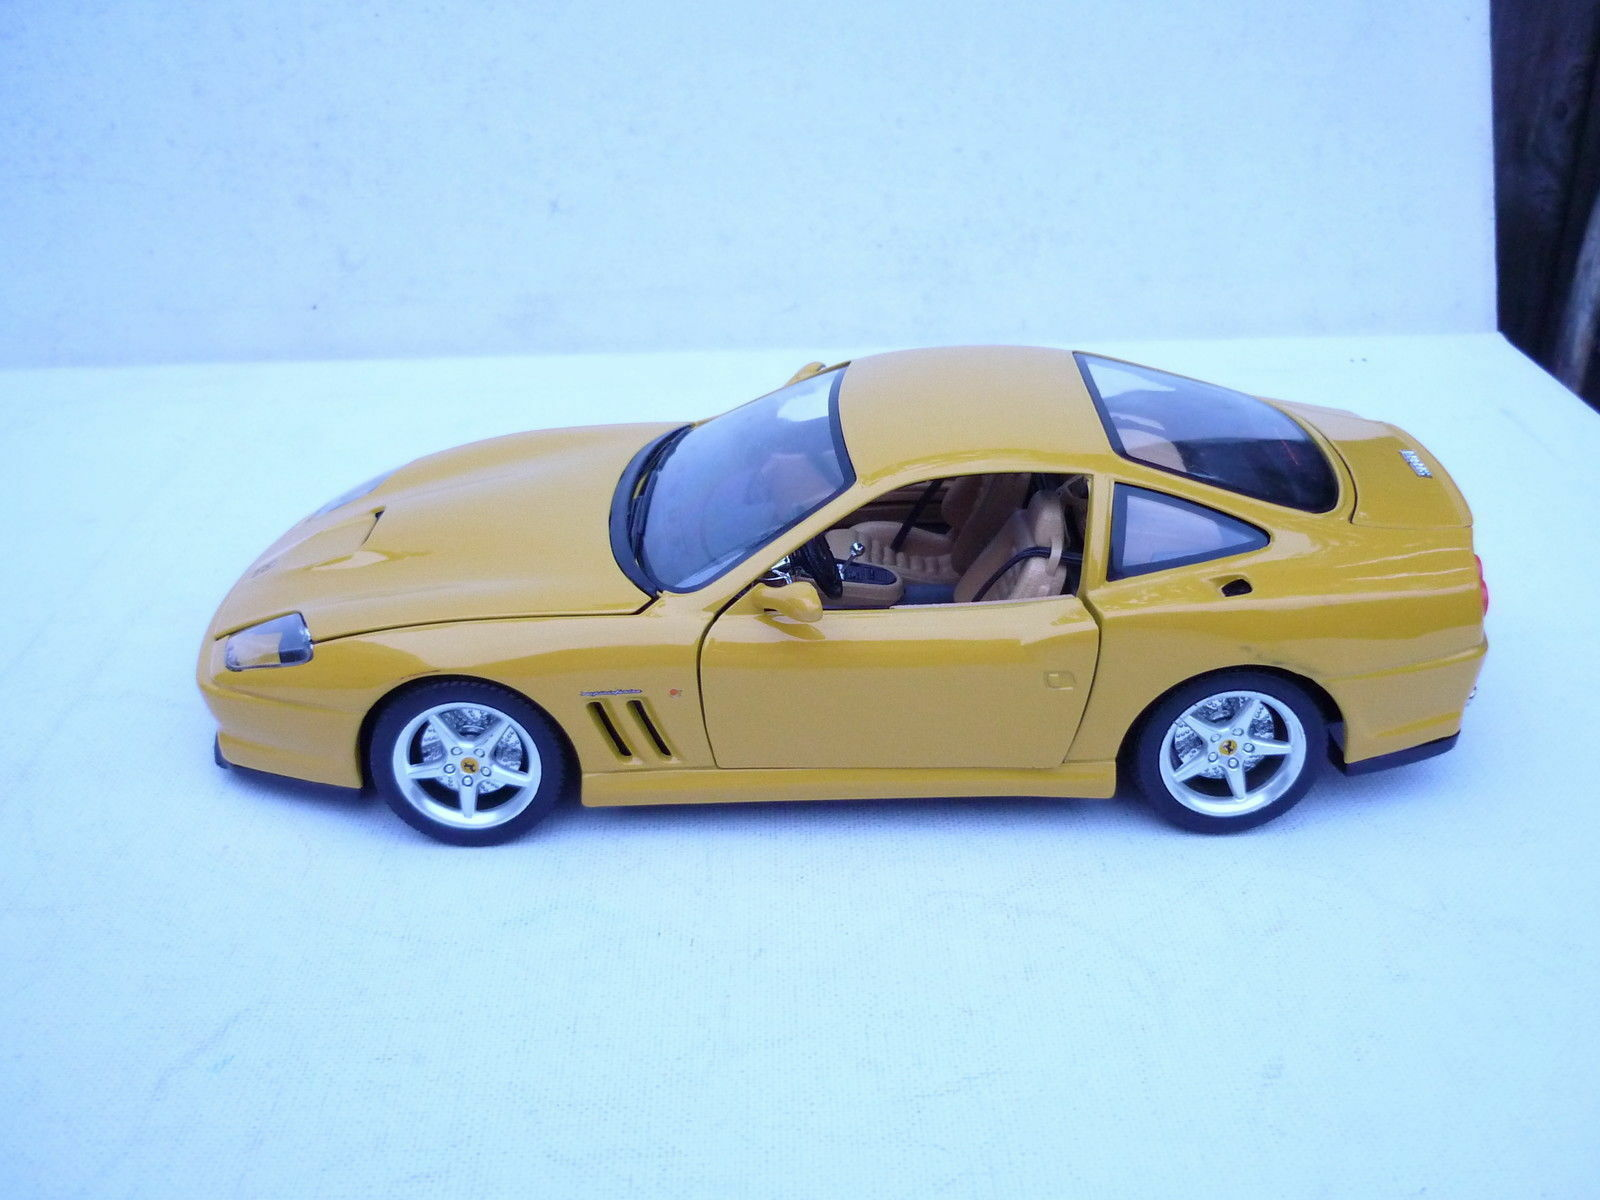 Burago 1 18 Metallmodell gold Collection Yellow Ferrari 550 Maranello 1996